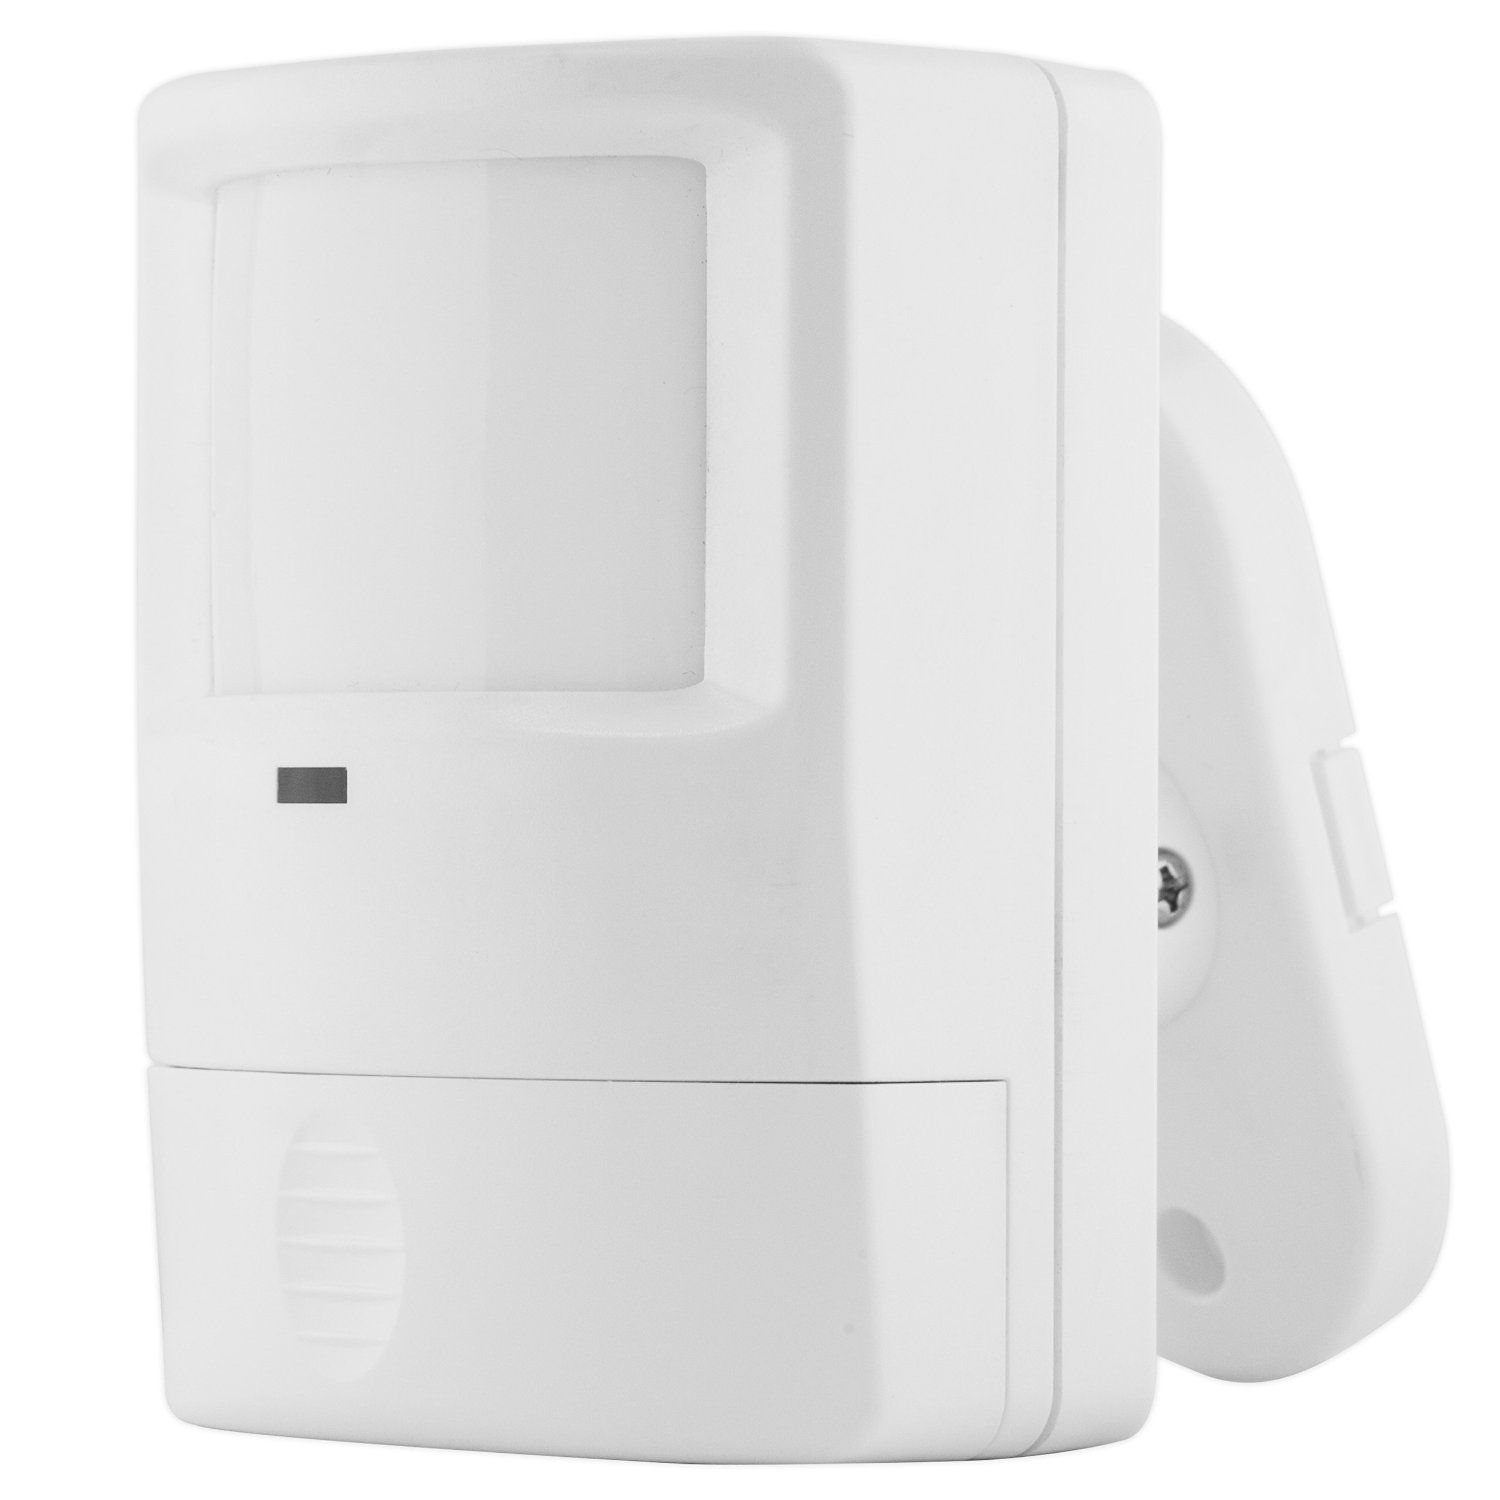 Enerlites Mpw J Wall Mount Occupancy Sensor Passive Infrared Pir Line Voltage Infrared Wall Sensor